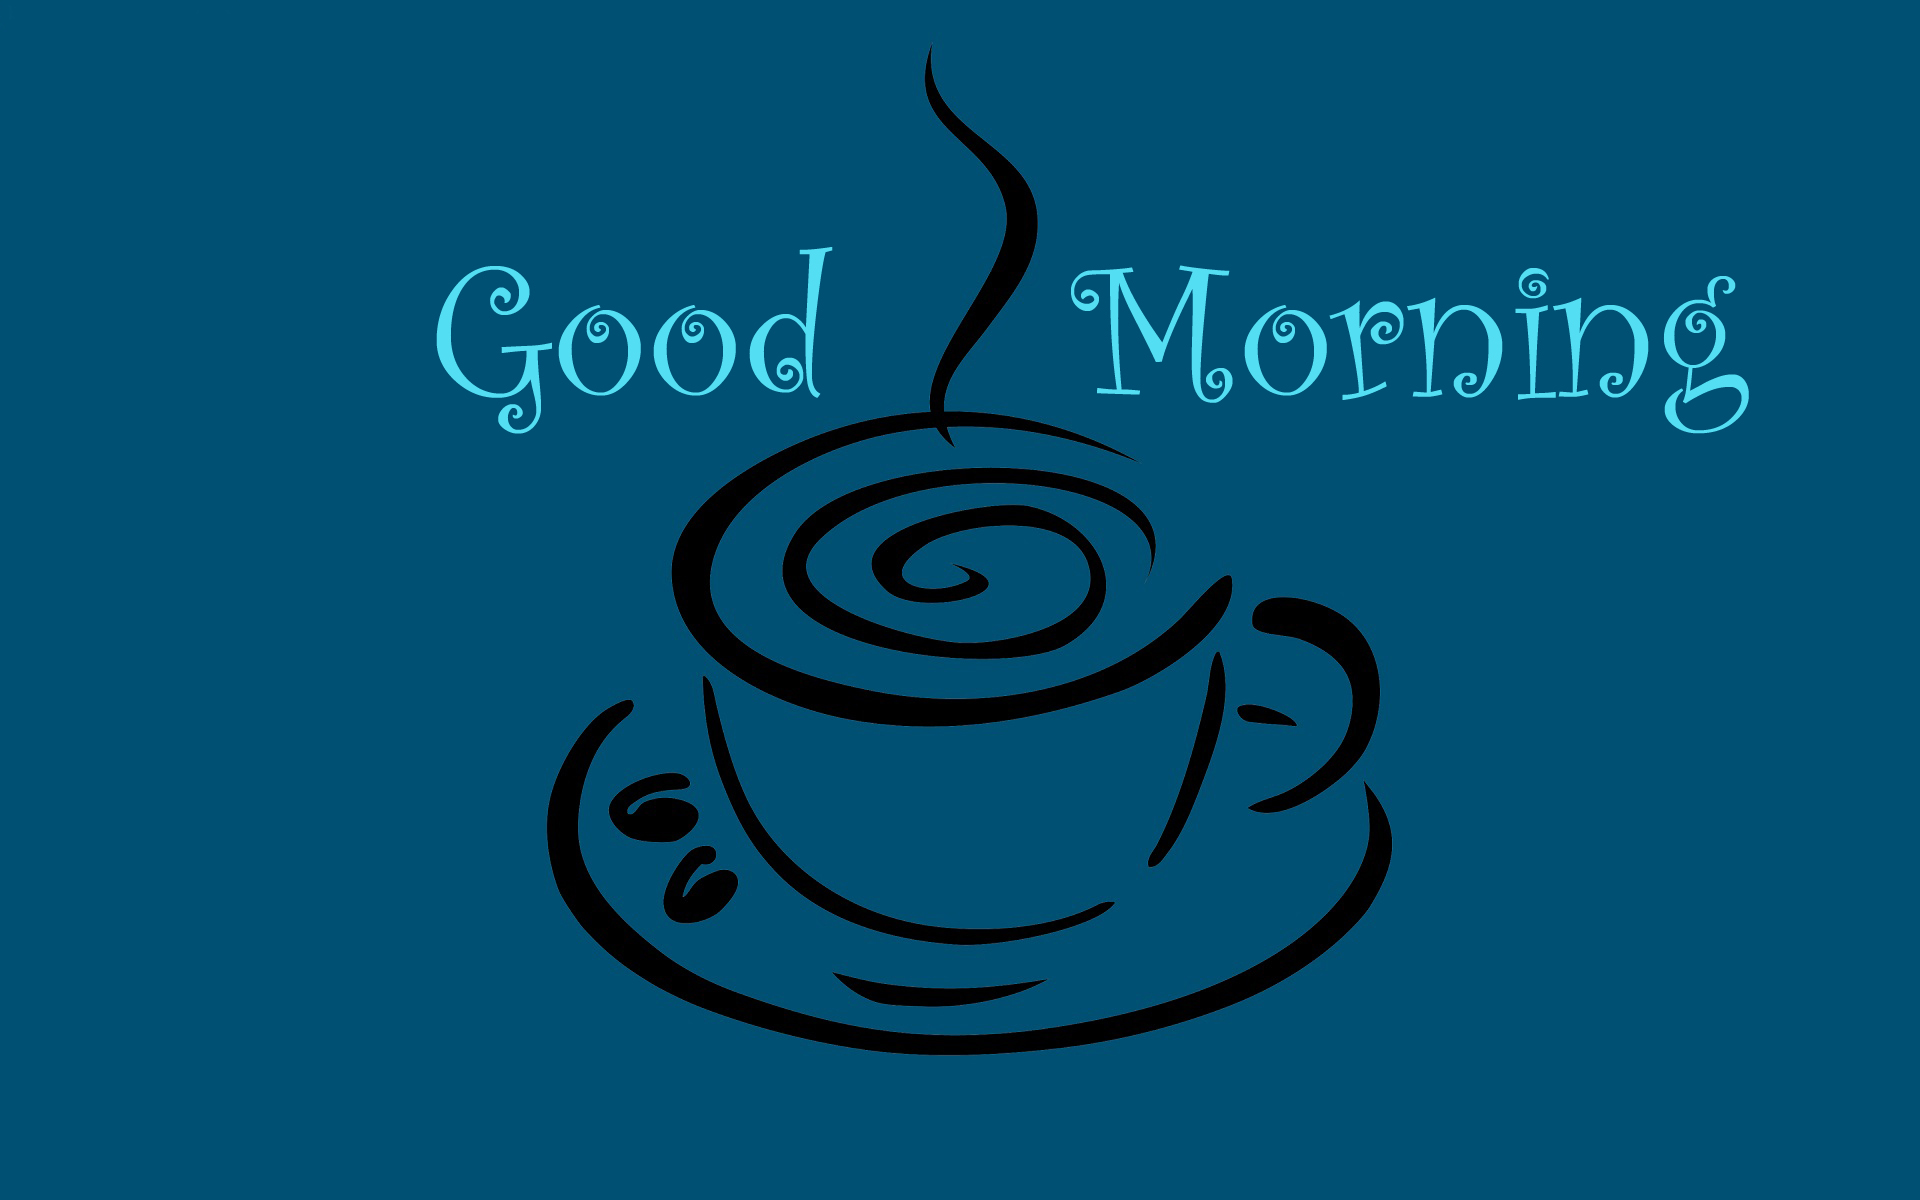 Good morning coffee clip art hd wallpapers